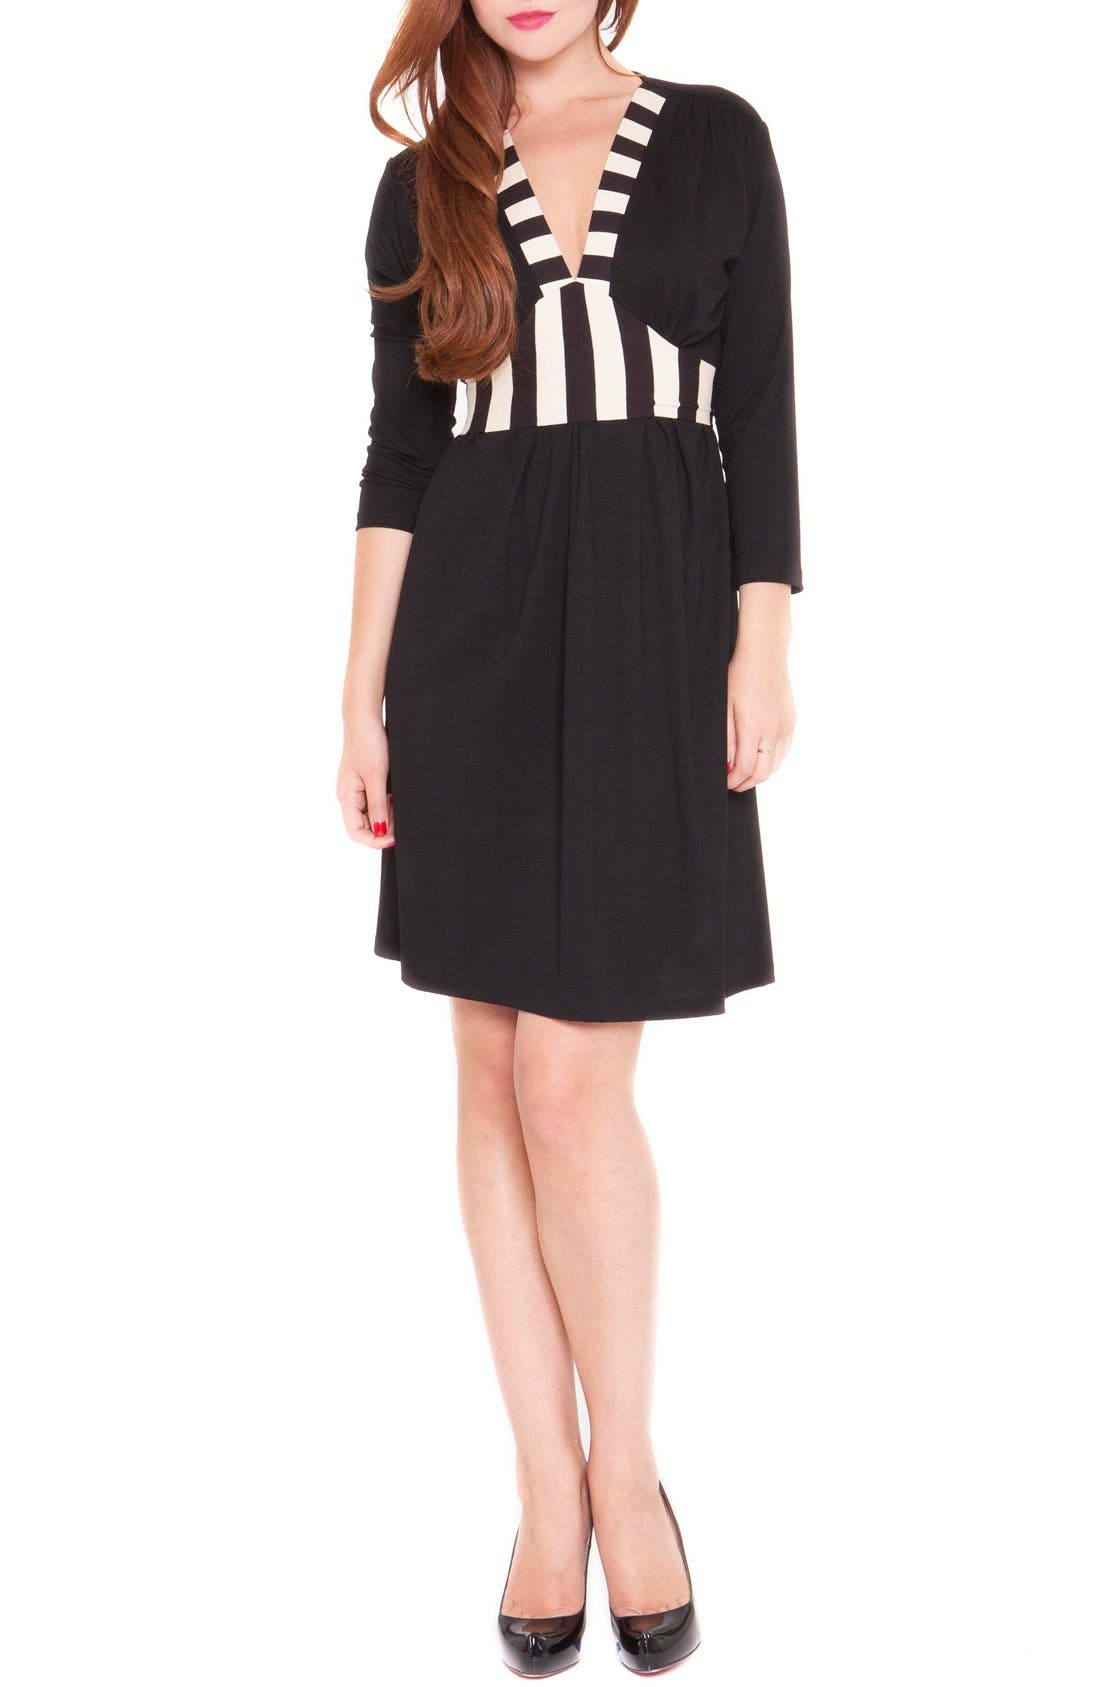 OLIAN 'Lucy' Maternity/Nursing Dress